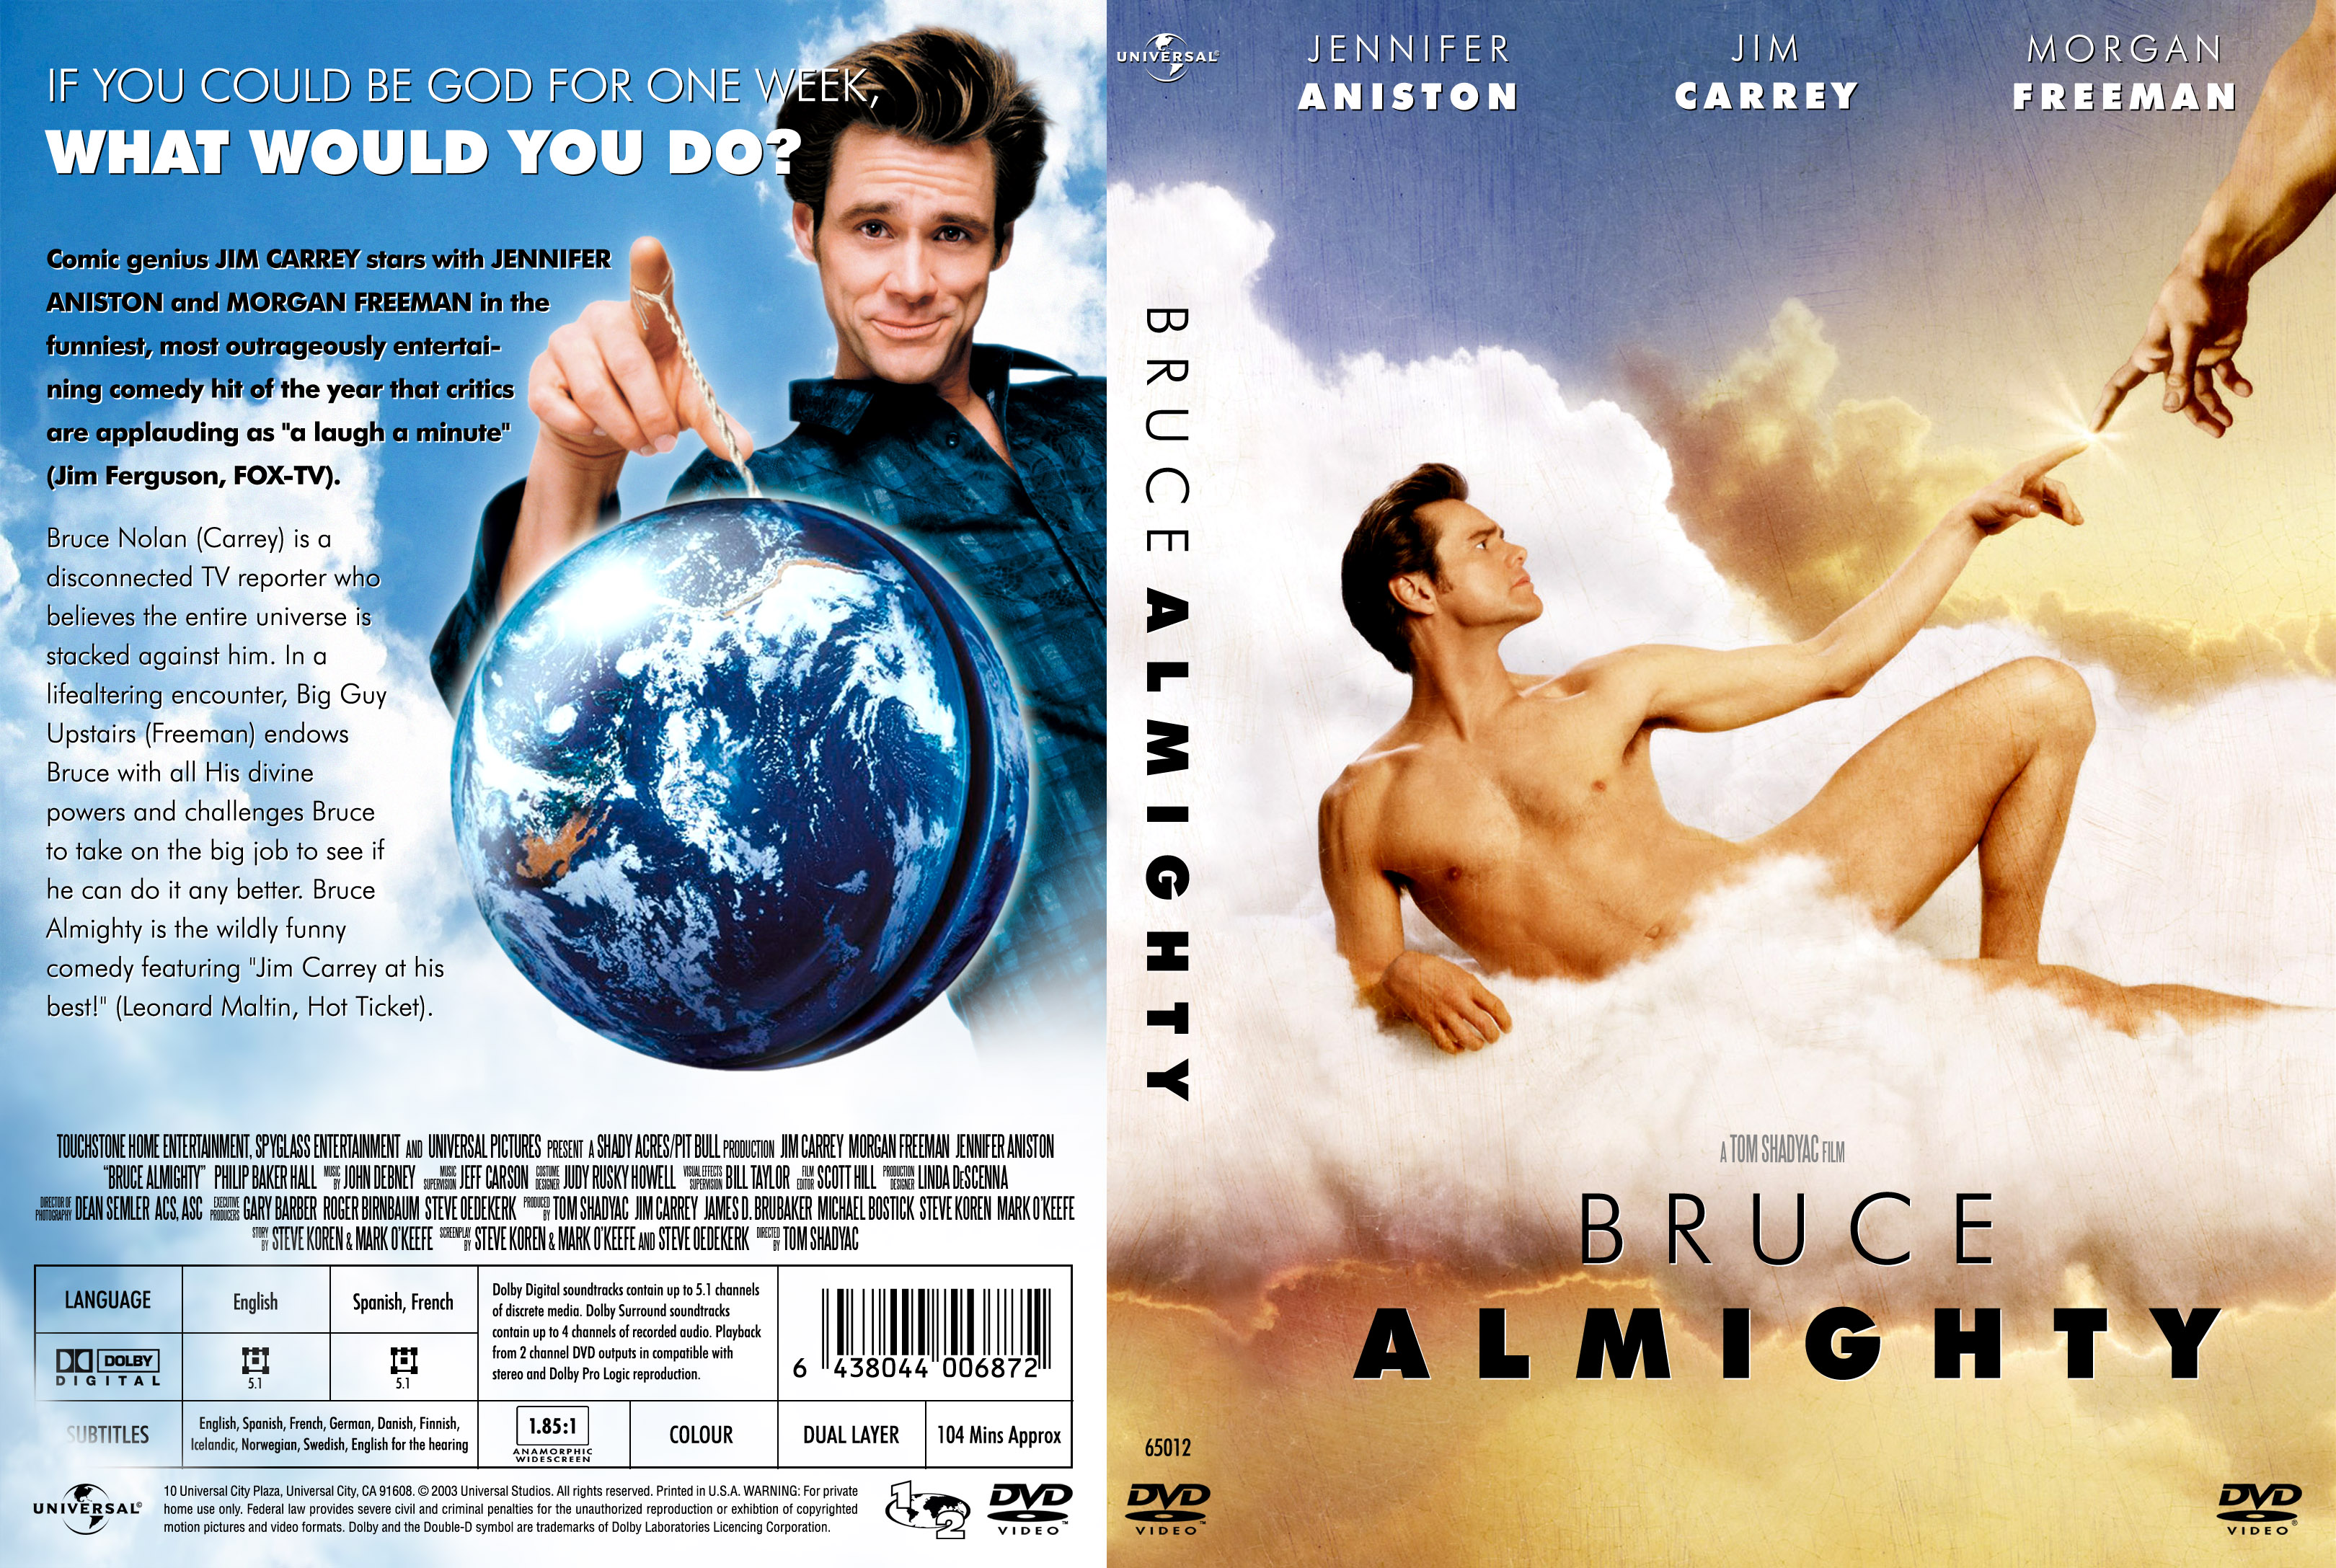 essay on movie bruce almighty